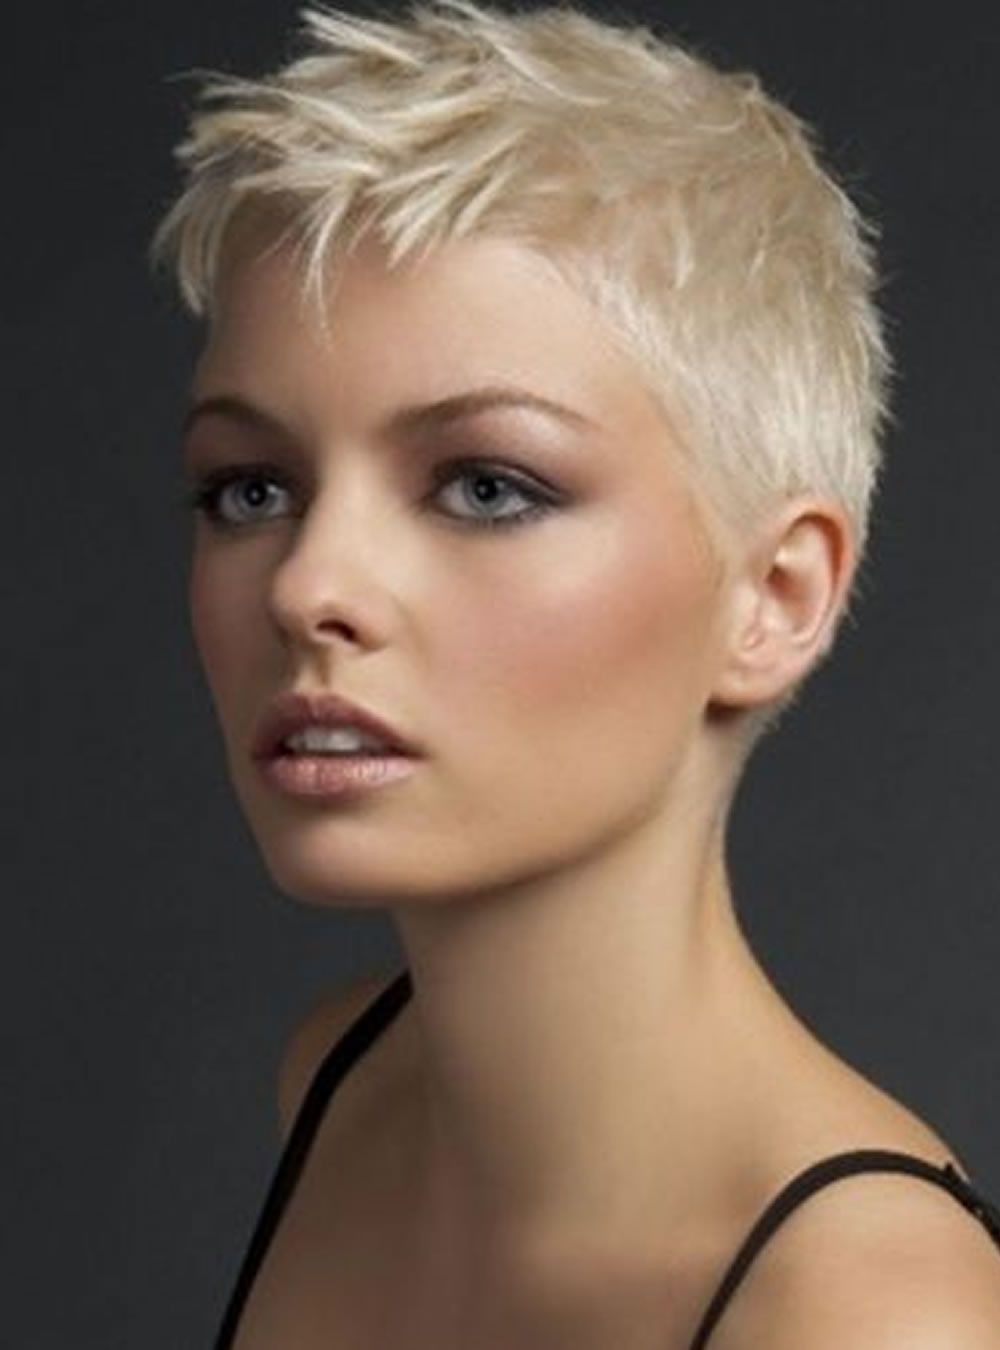 Image Result For Extreme Short Haircuts For Women Super Short Hair Short Hair Styles Pixie Thick Hair Styles